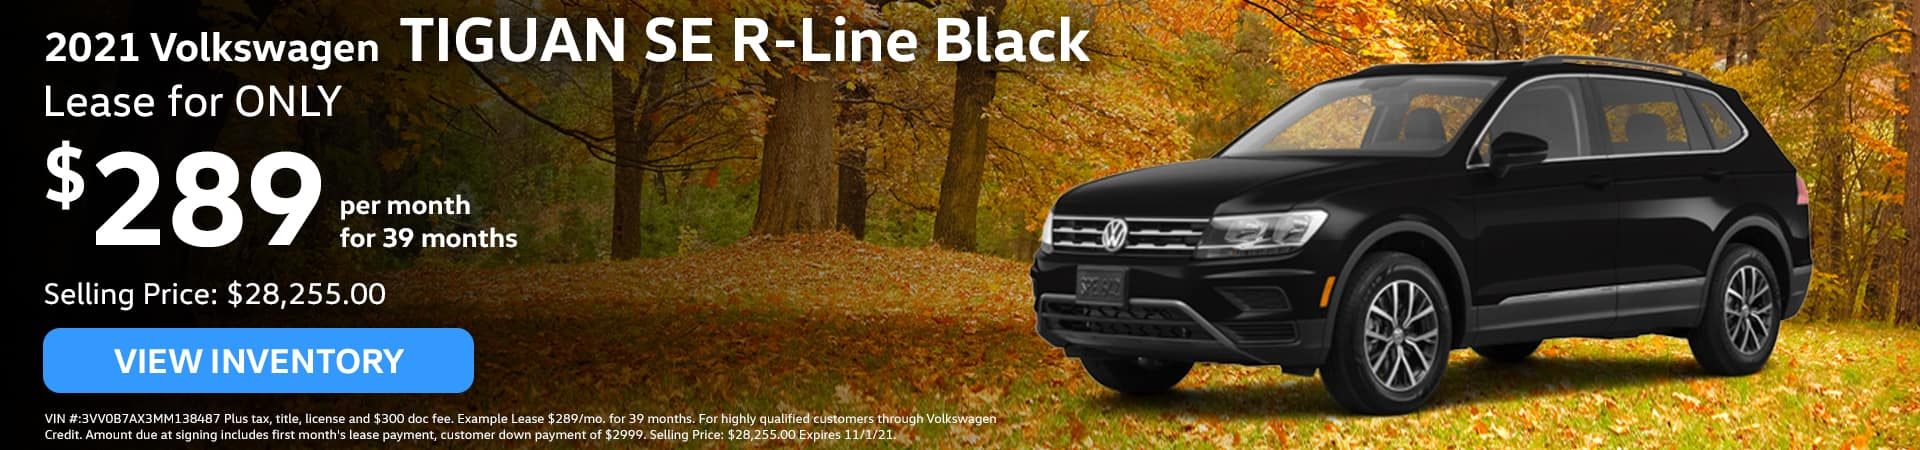 2021 Volkswagen TIGUAN SE R-Line Black, Lease for ONLY $289/mo. for 39 months!